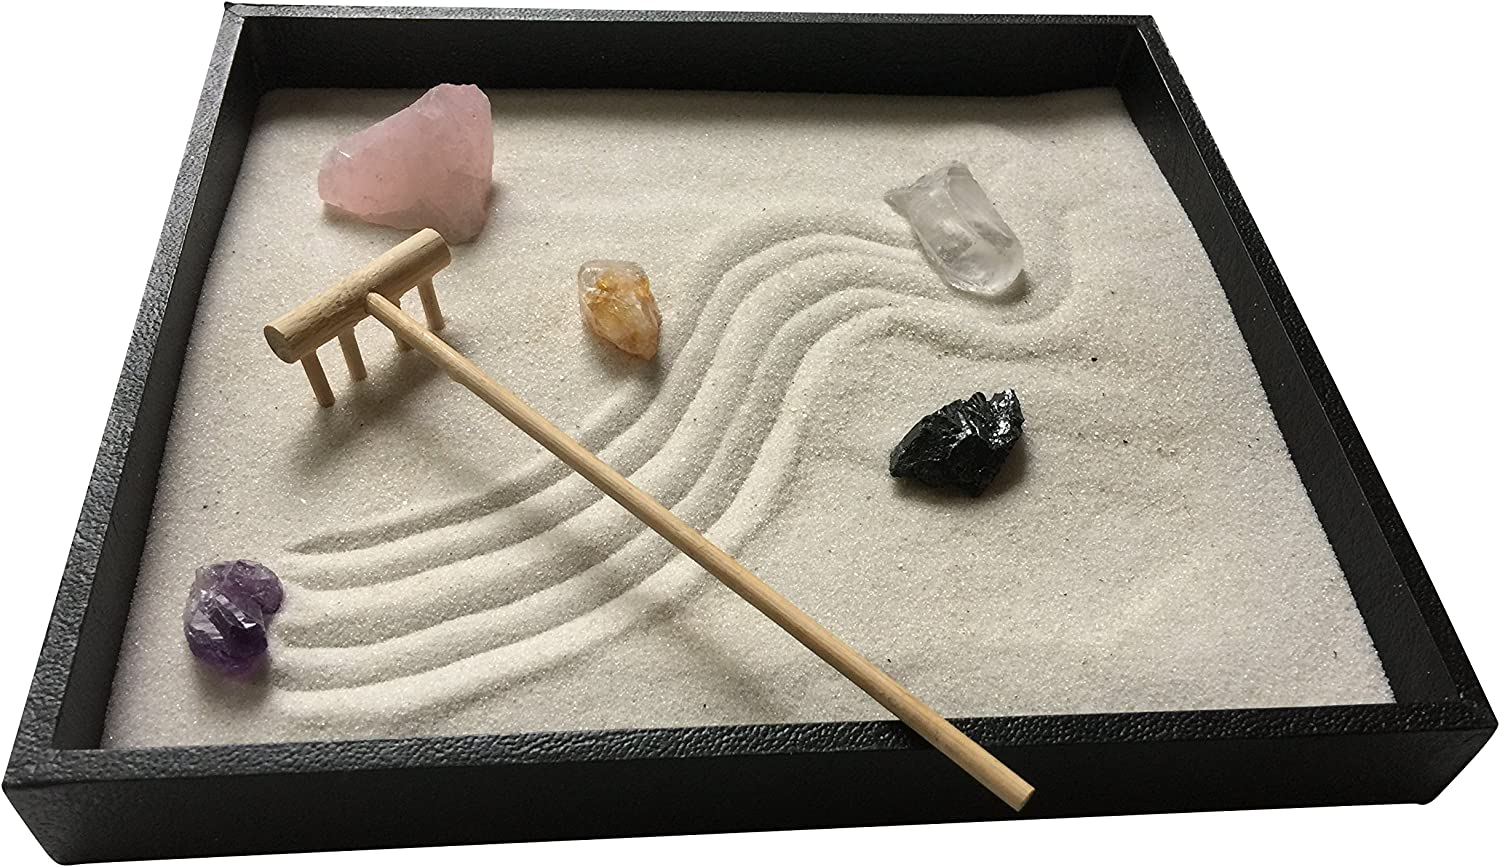 Healing Crystal Zen Garden with White Sand and Bamboo Rake